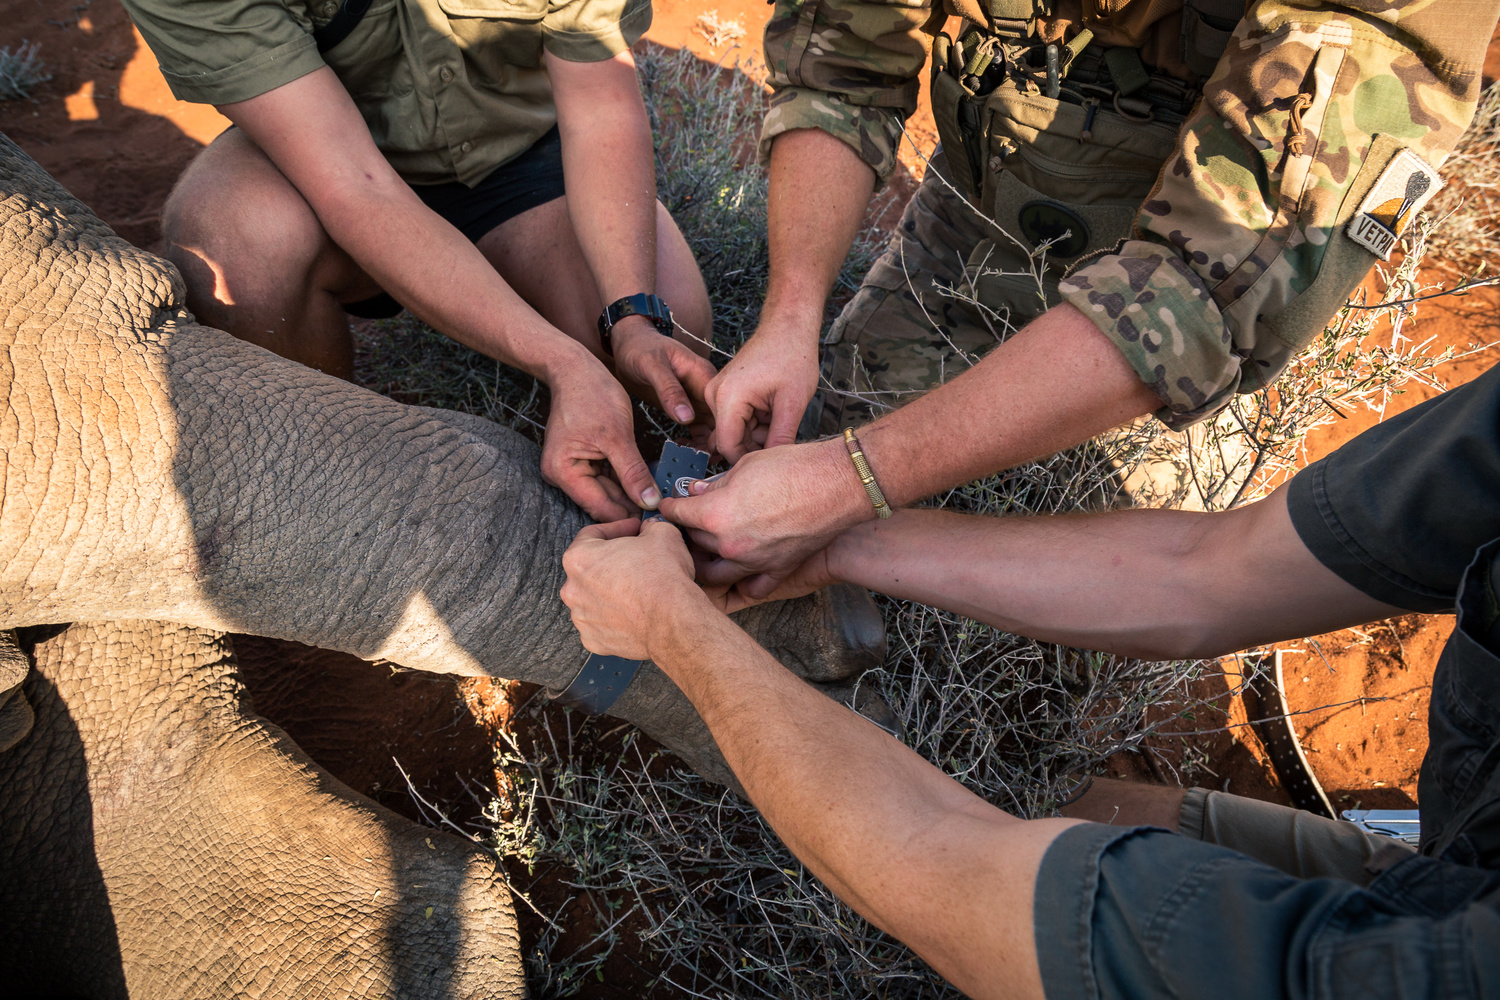 Three people collaring a White Rhino in South Africa